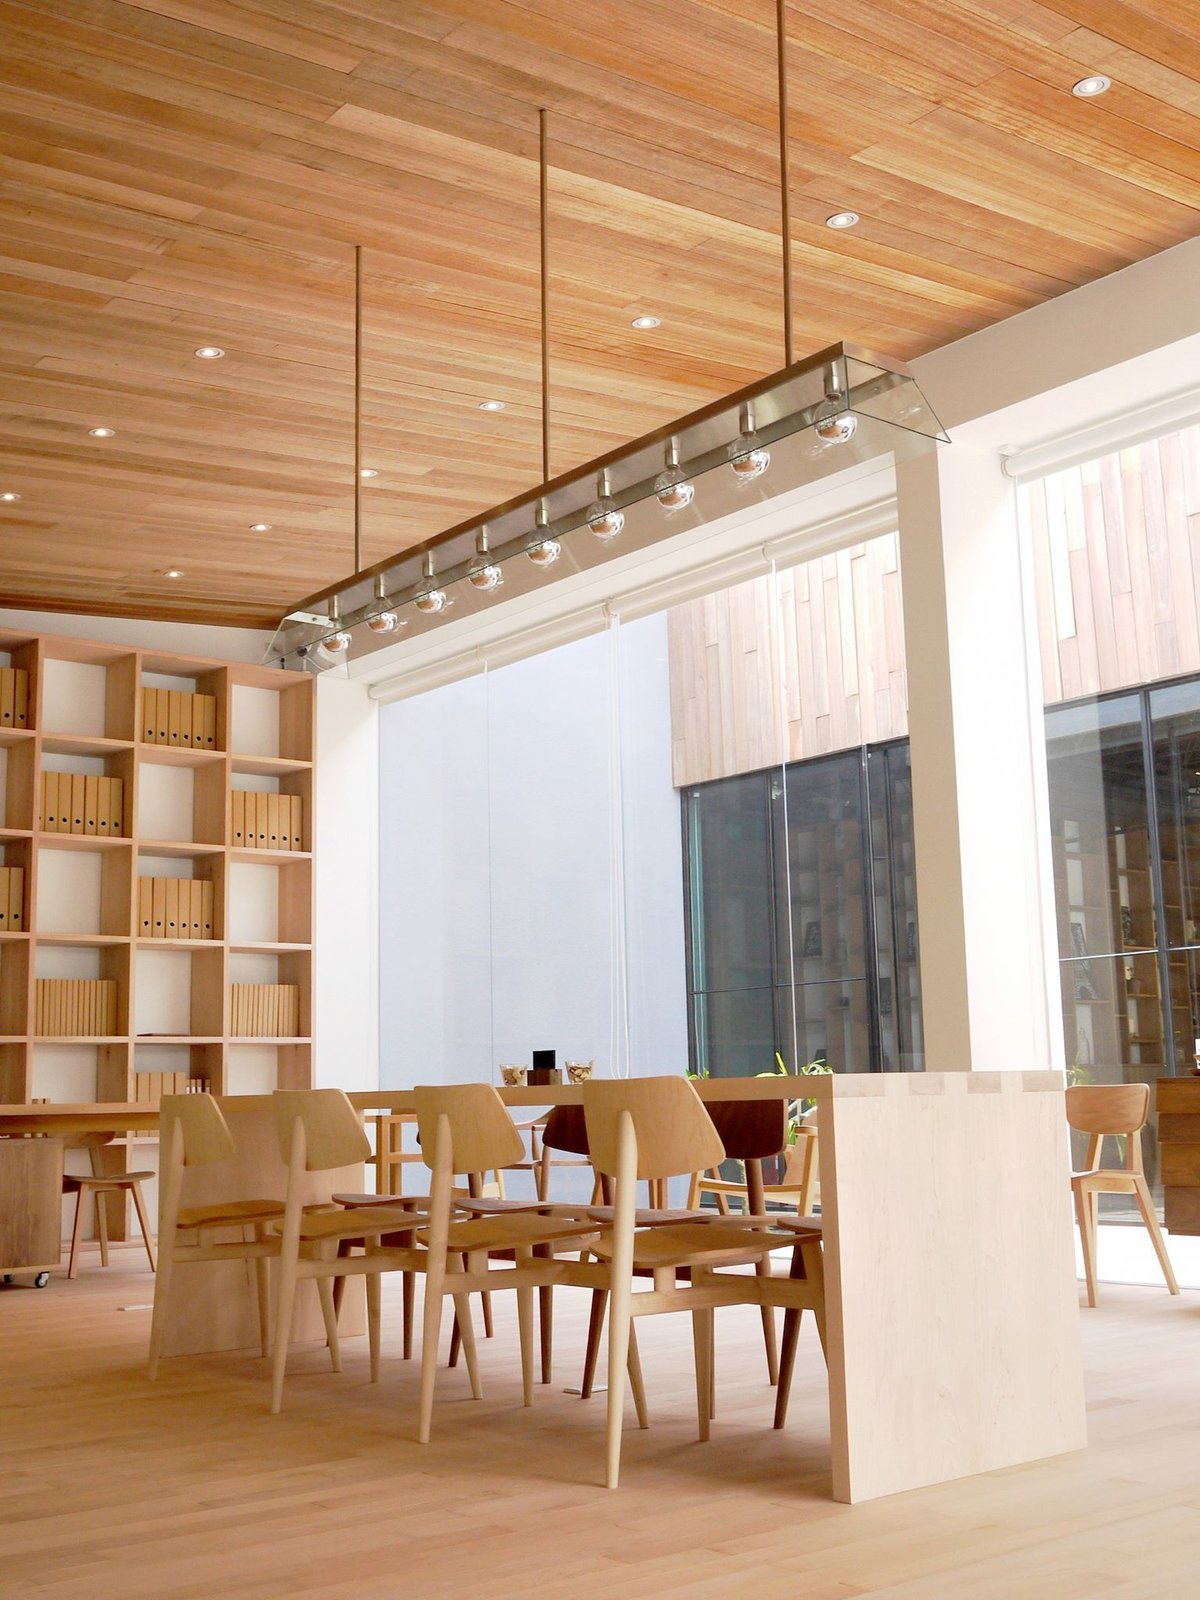 Taiwanese brand RÜSKASA features minimalist wooden furniture which is all locally designed and hand-crafted using traditional Taiwanese techniques. Visit 12 Design-Centric Stops in the Asian Metropolis of Taipei - Photo 4 of 14